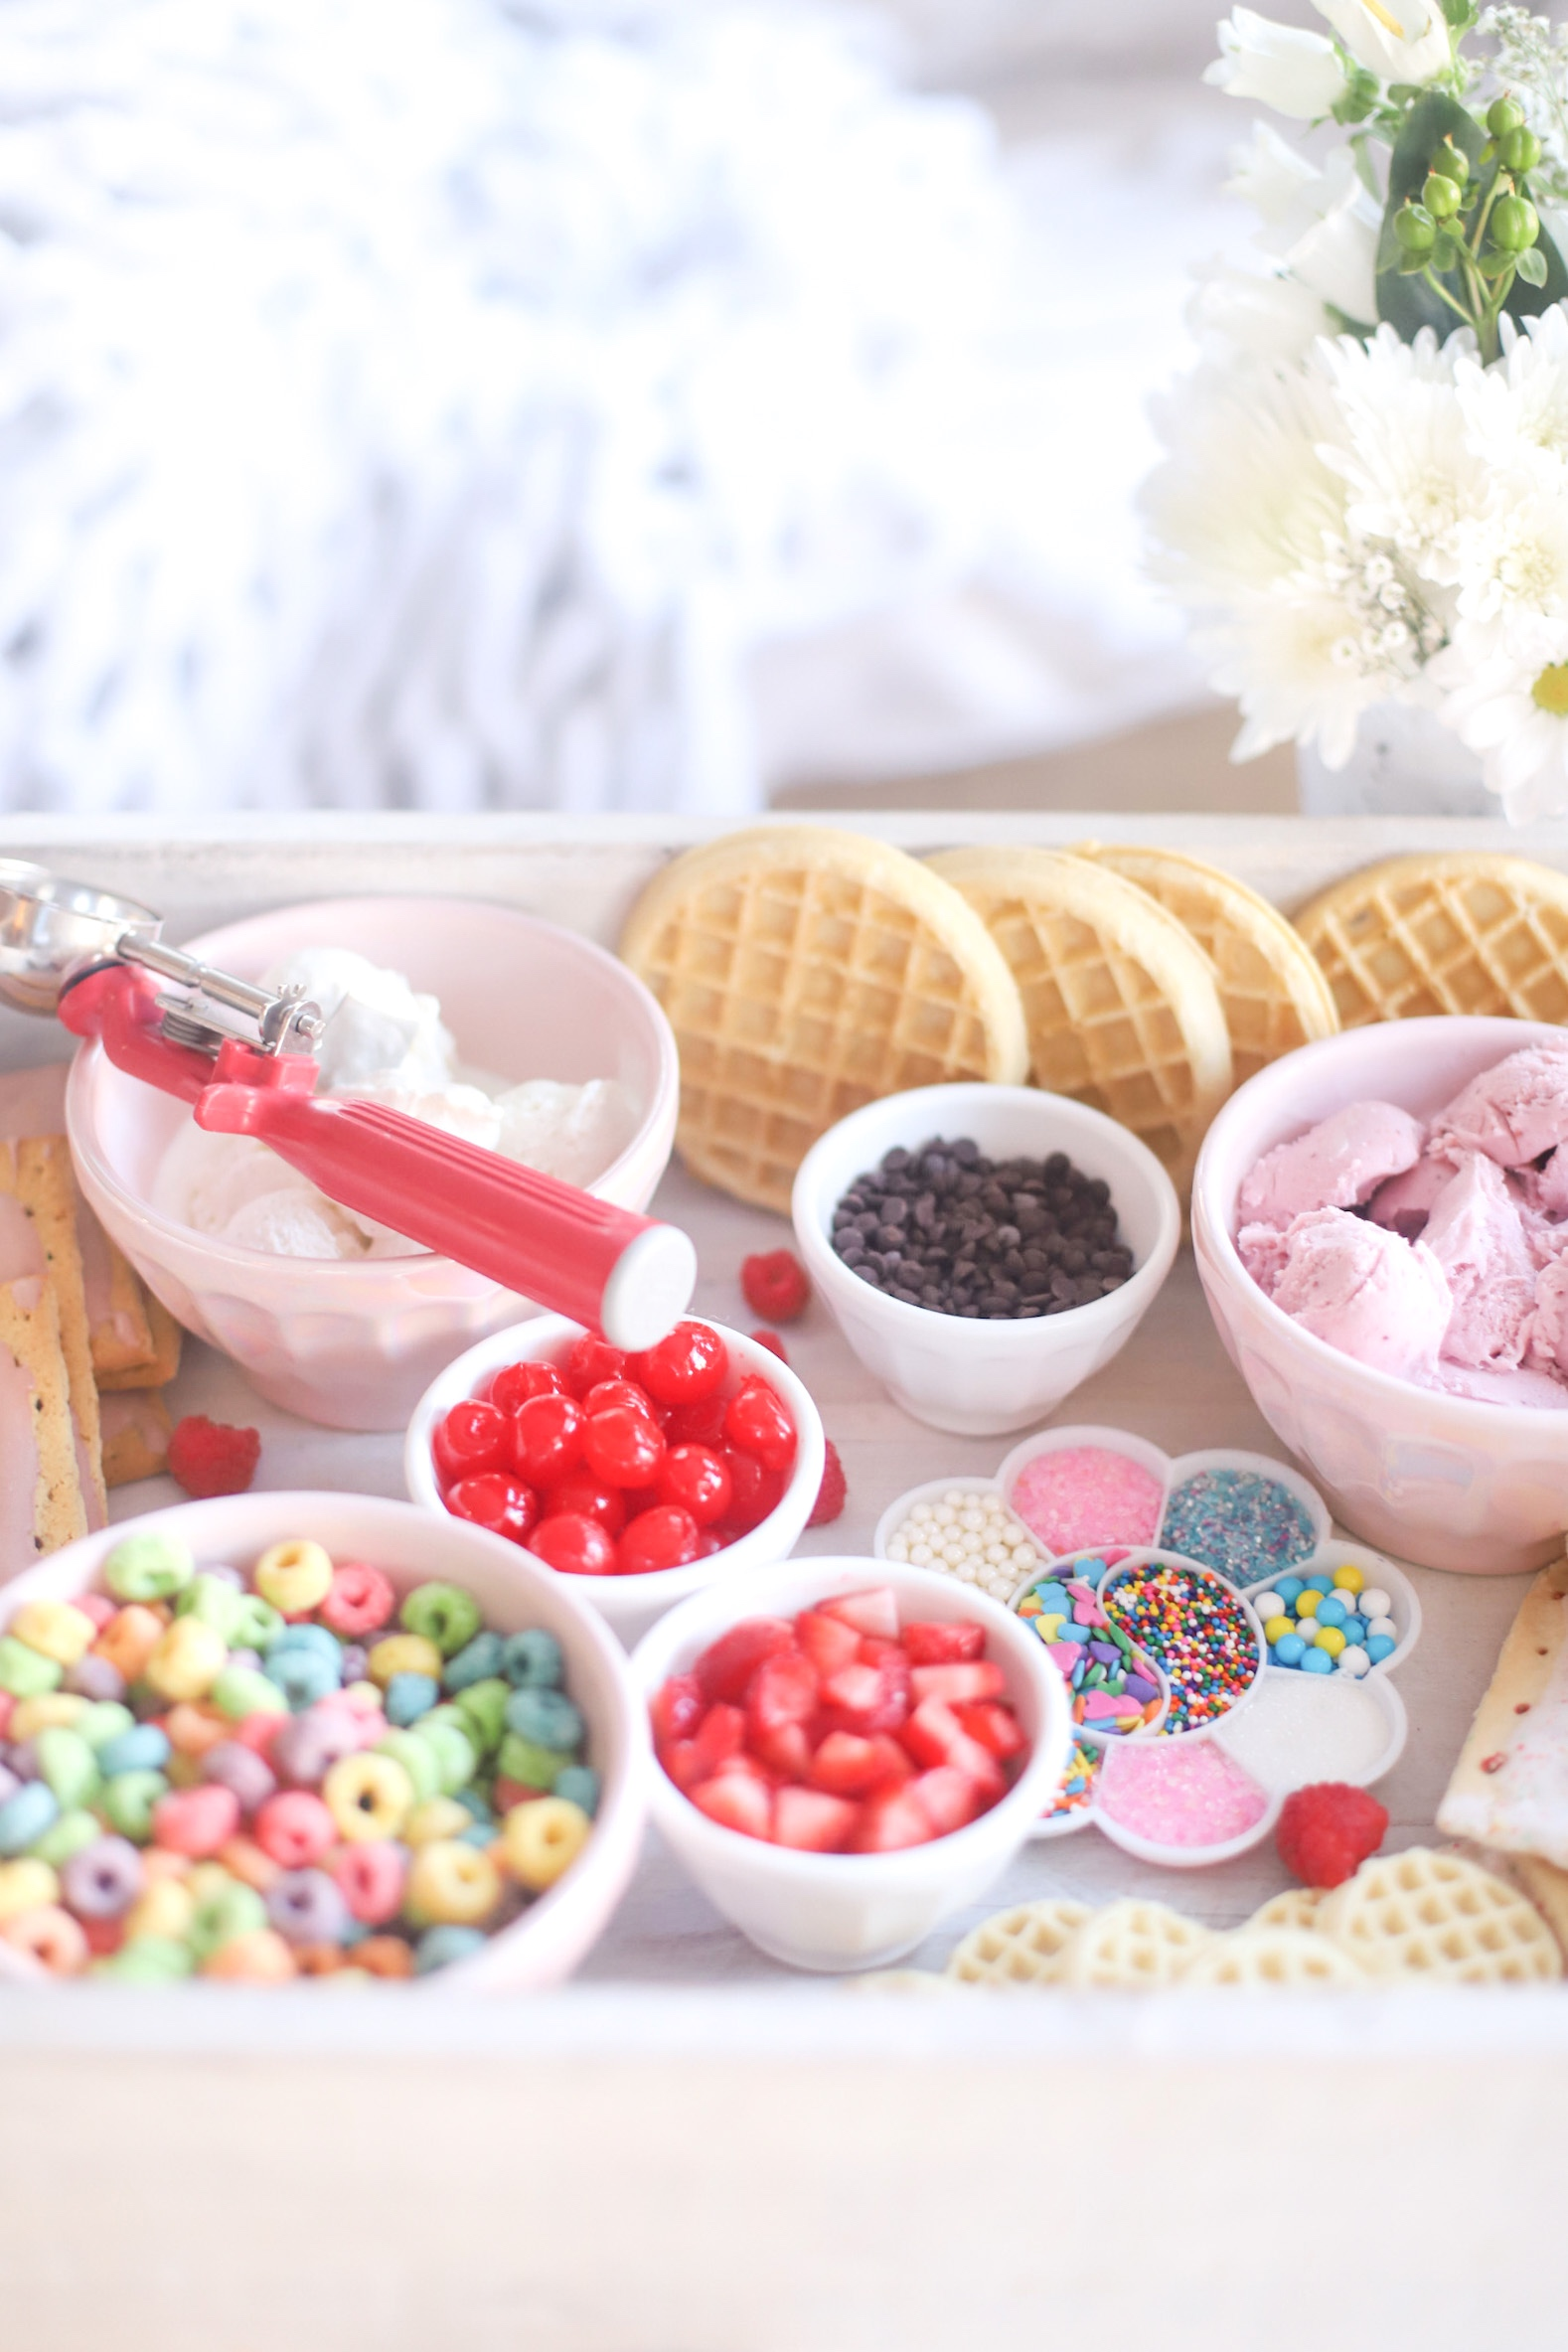 Create-Your-Own Ice Cream tray with ice cream and toppings